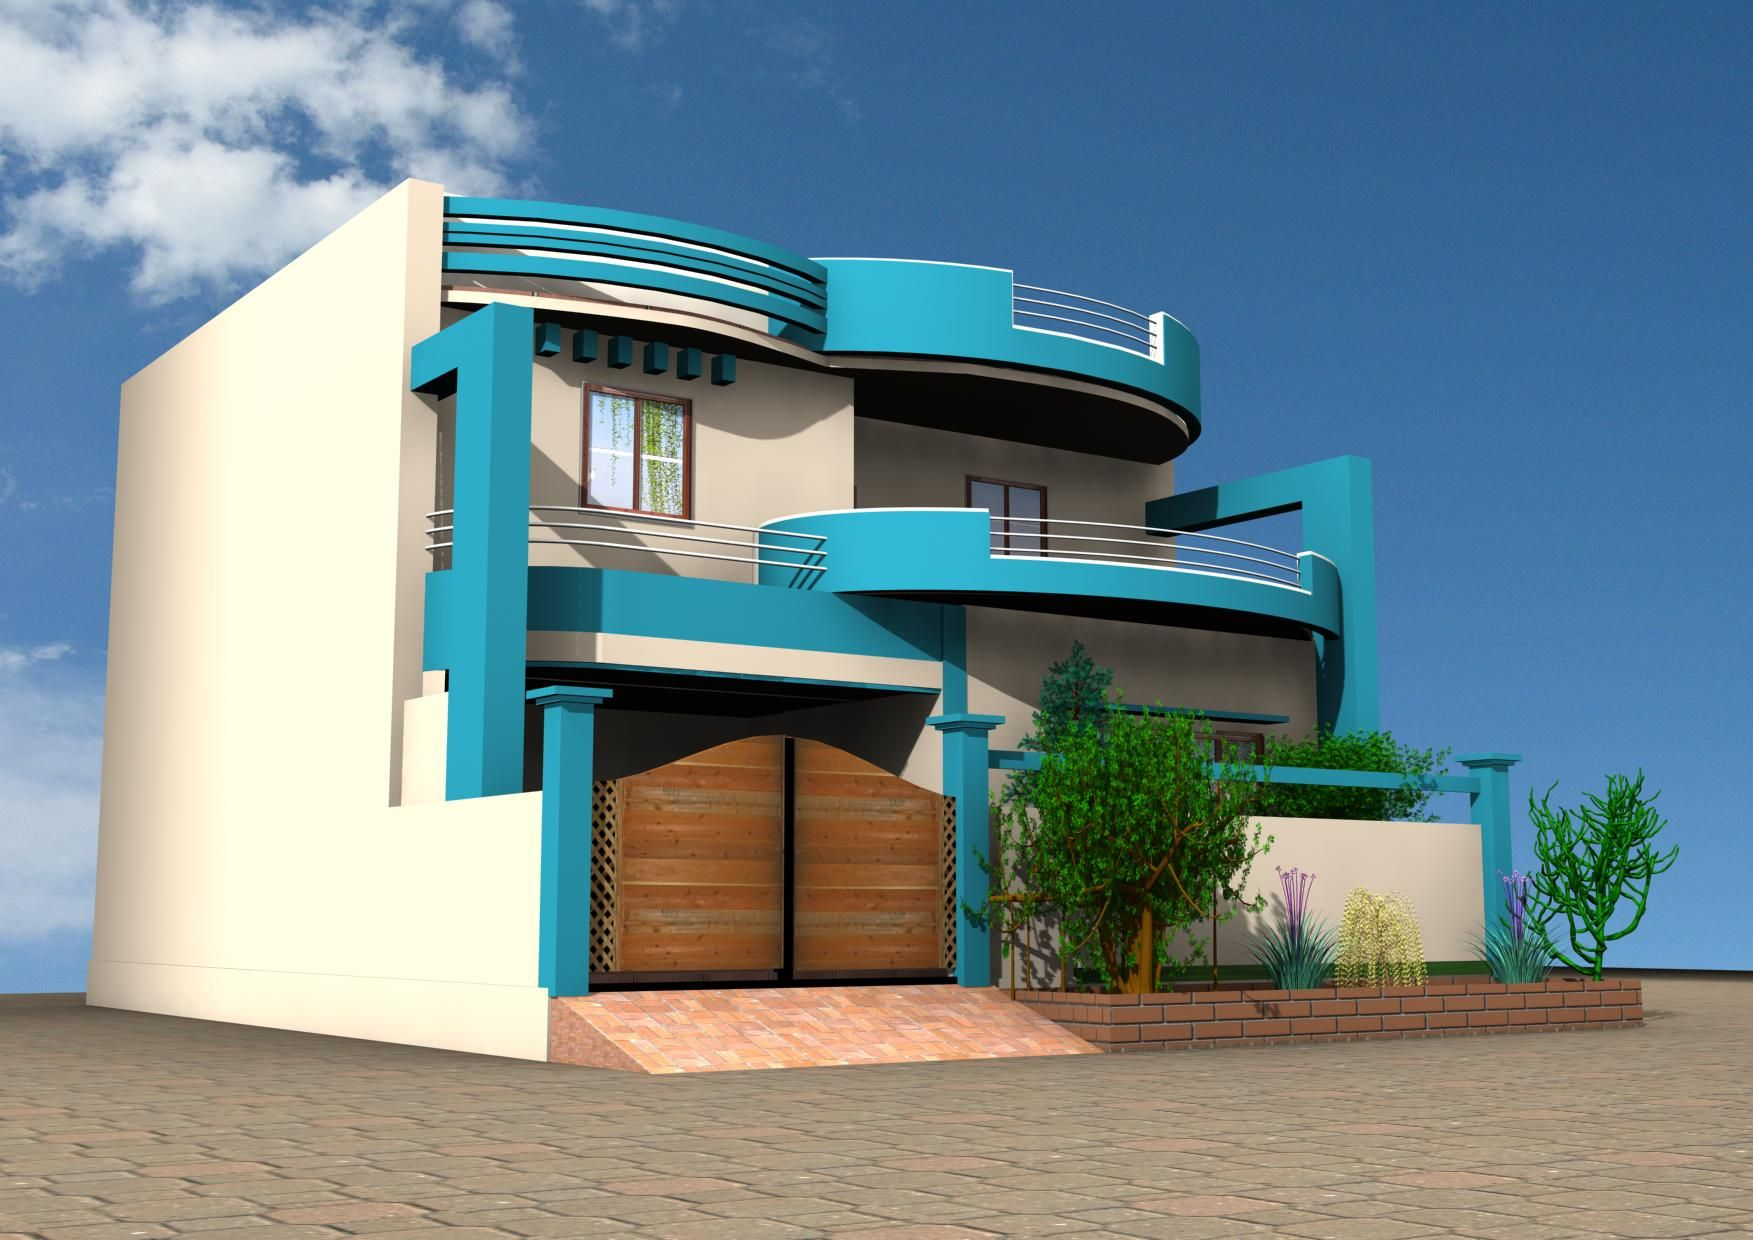 3d home design images hd 1080p for House building software free online